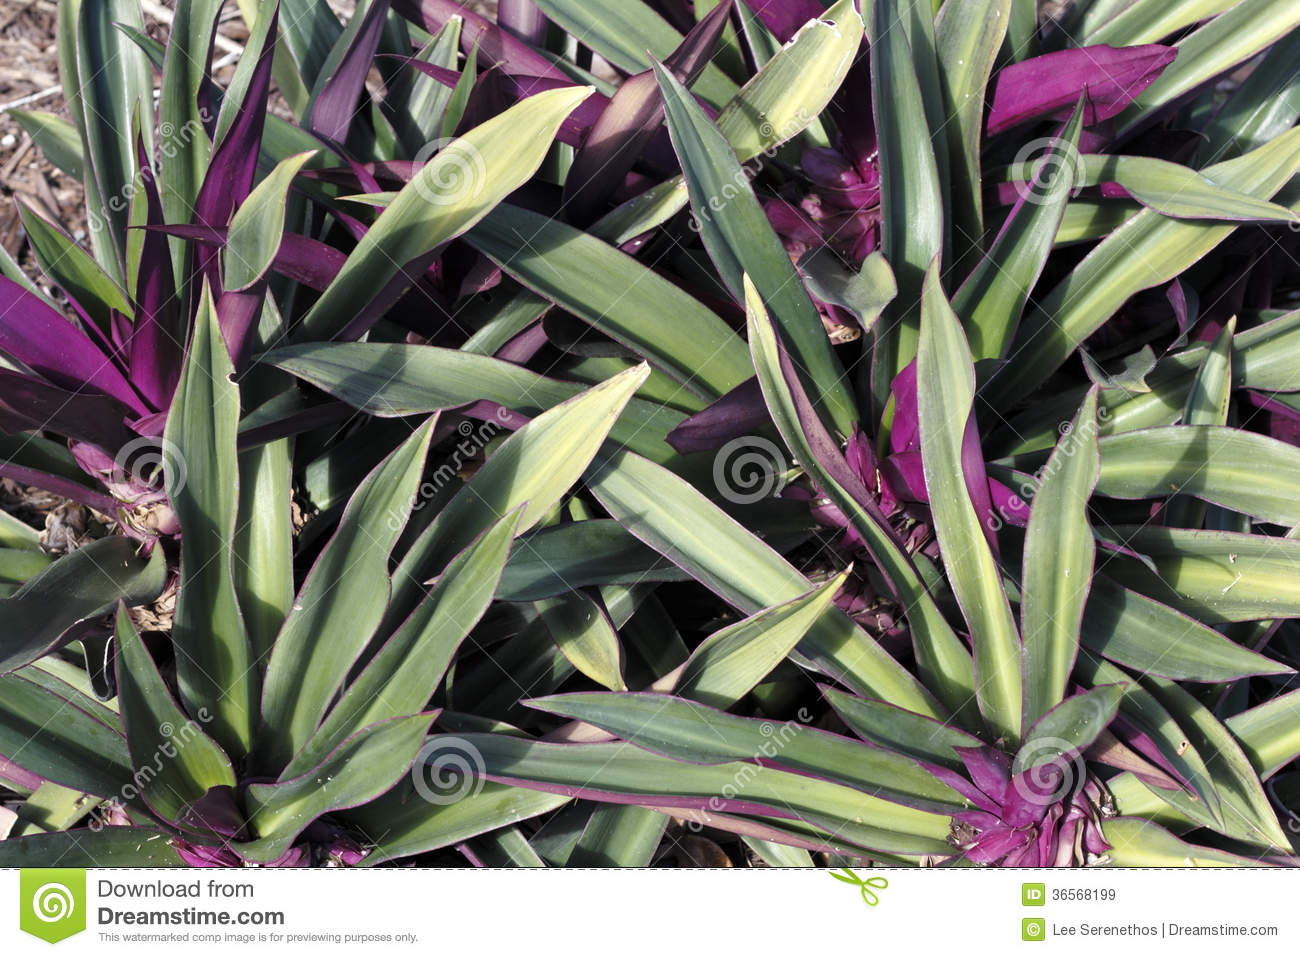 Lance shaped leaves clipart #11